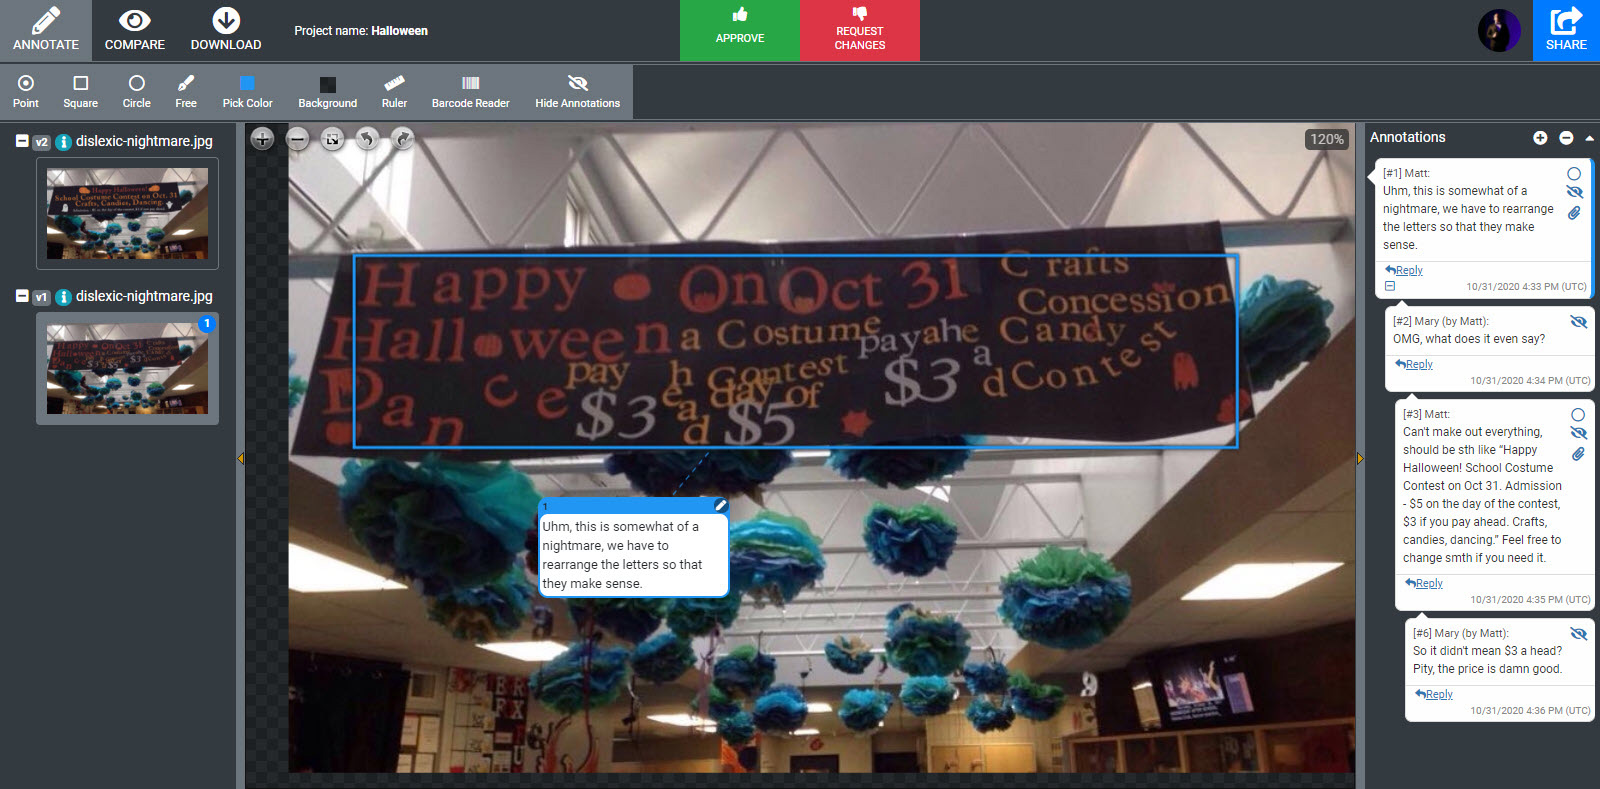 annotations to gibberish congratulations banner in approval studio